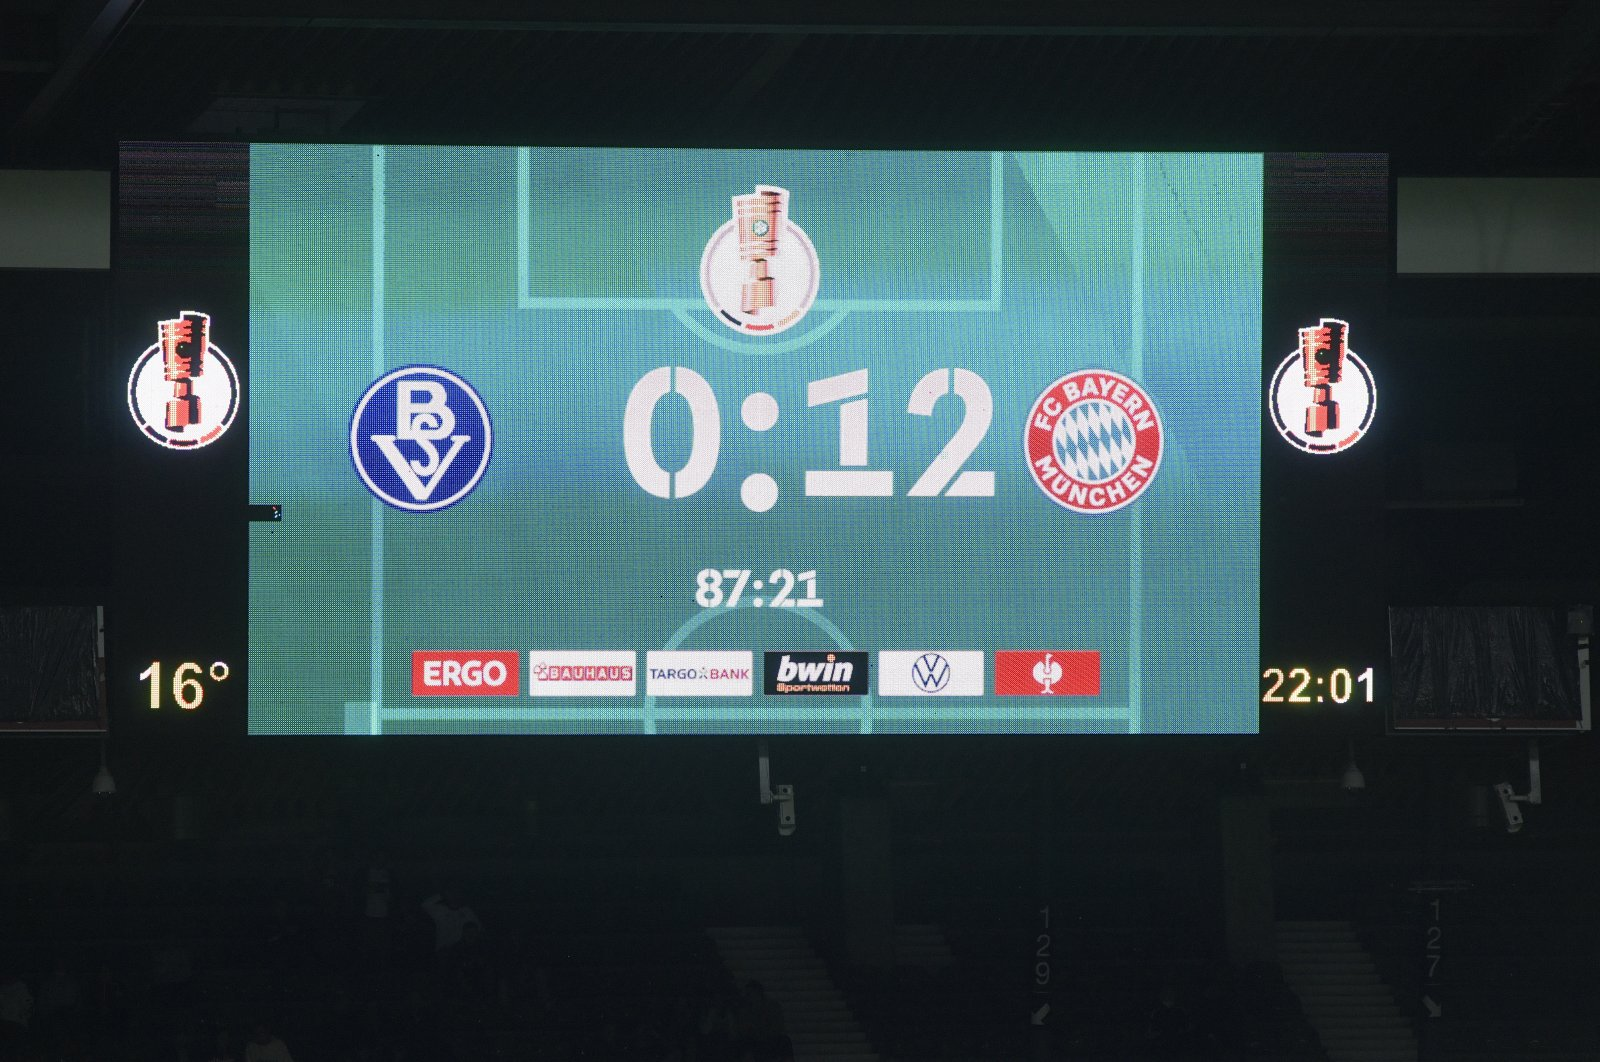 General view of the scoreboard during the German Cup (DFB Pokal) first-round match between Bremen and Bayern Munich, in Bremen, Germany, Aug. 25, 2021. (Reuters Photo)